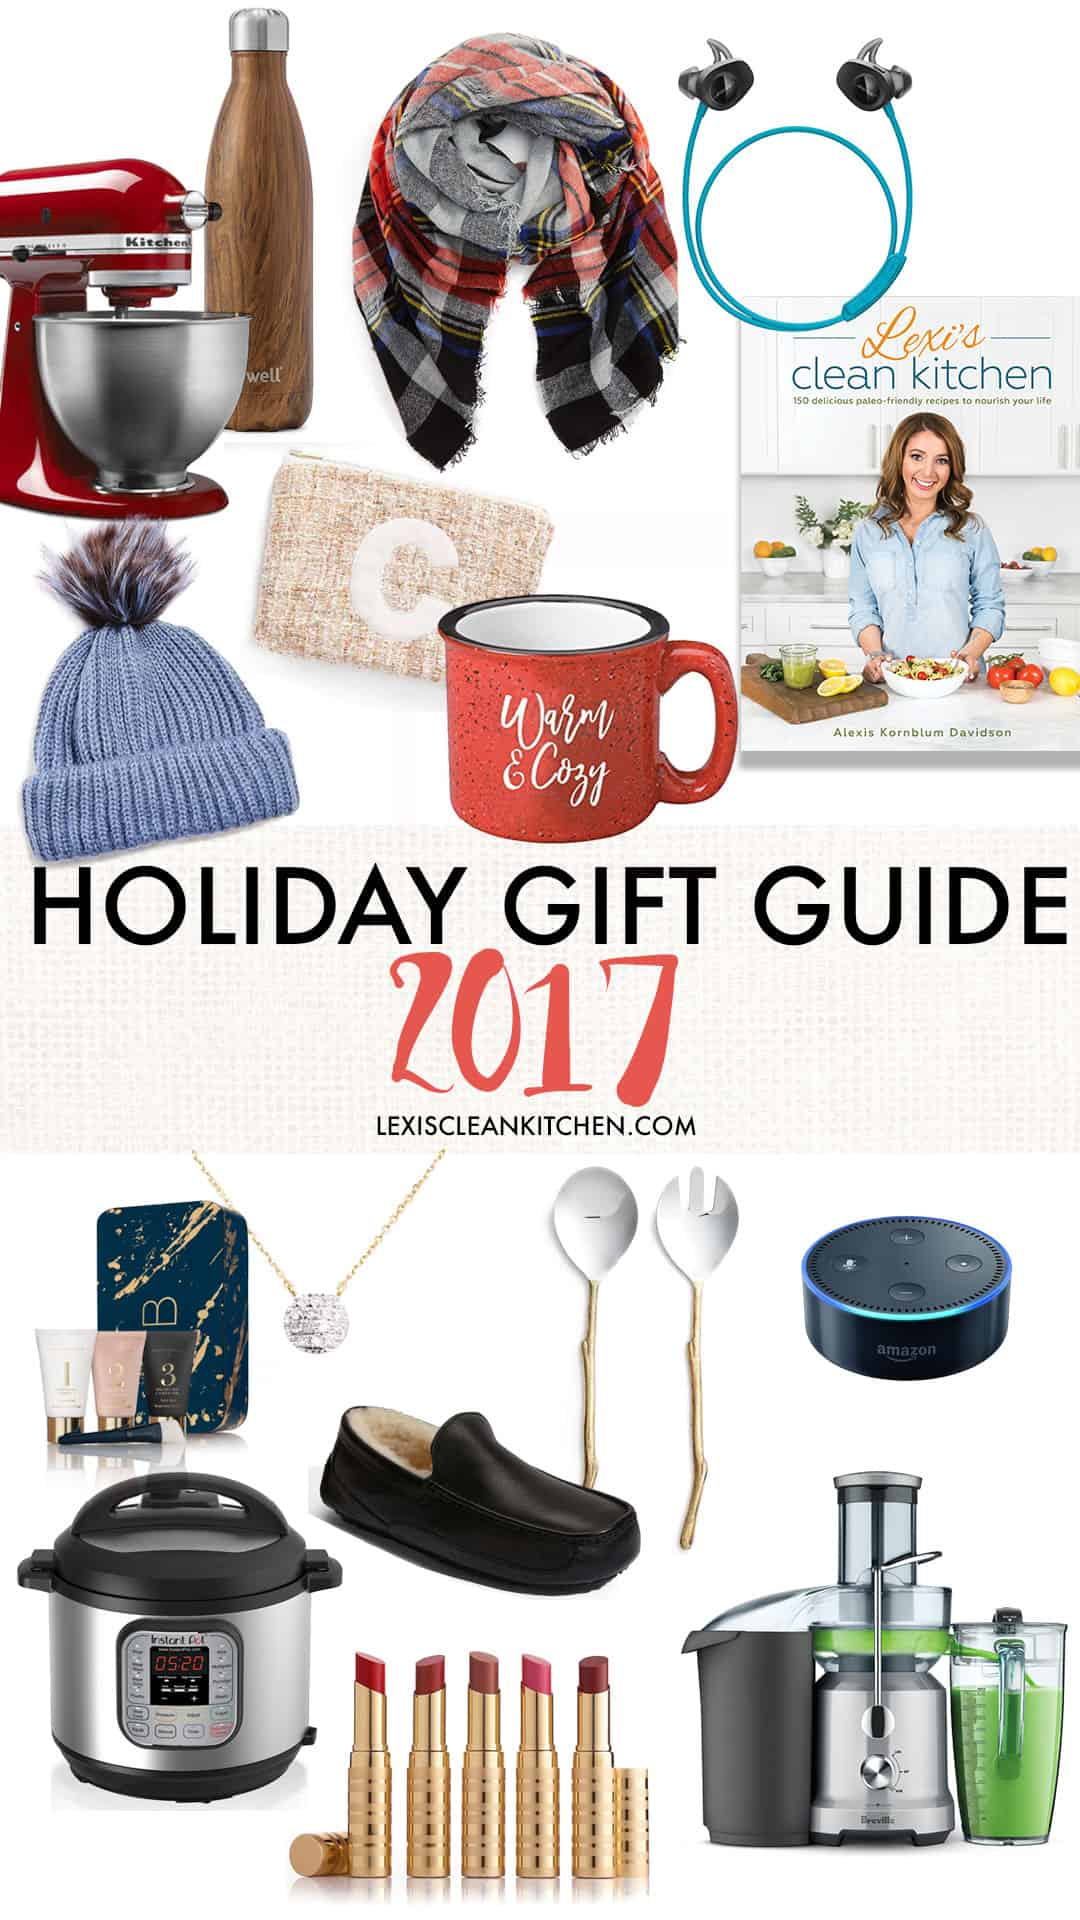 Holiday Gift Guide 2017 #holiday #giftguide #2017 #christmas #hanukkah #presents